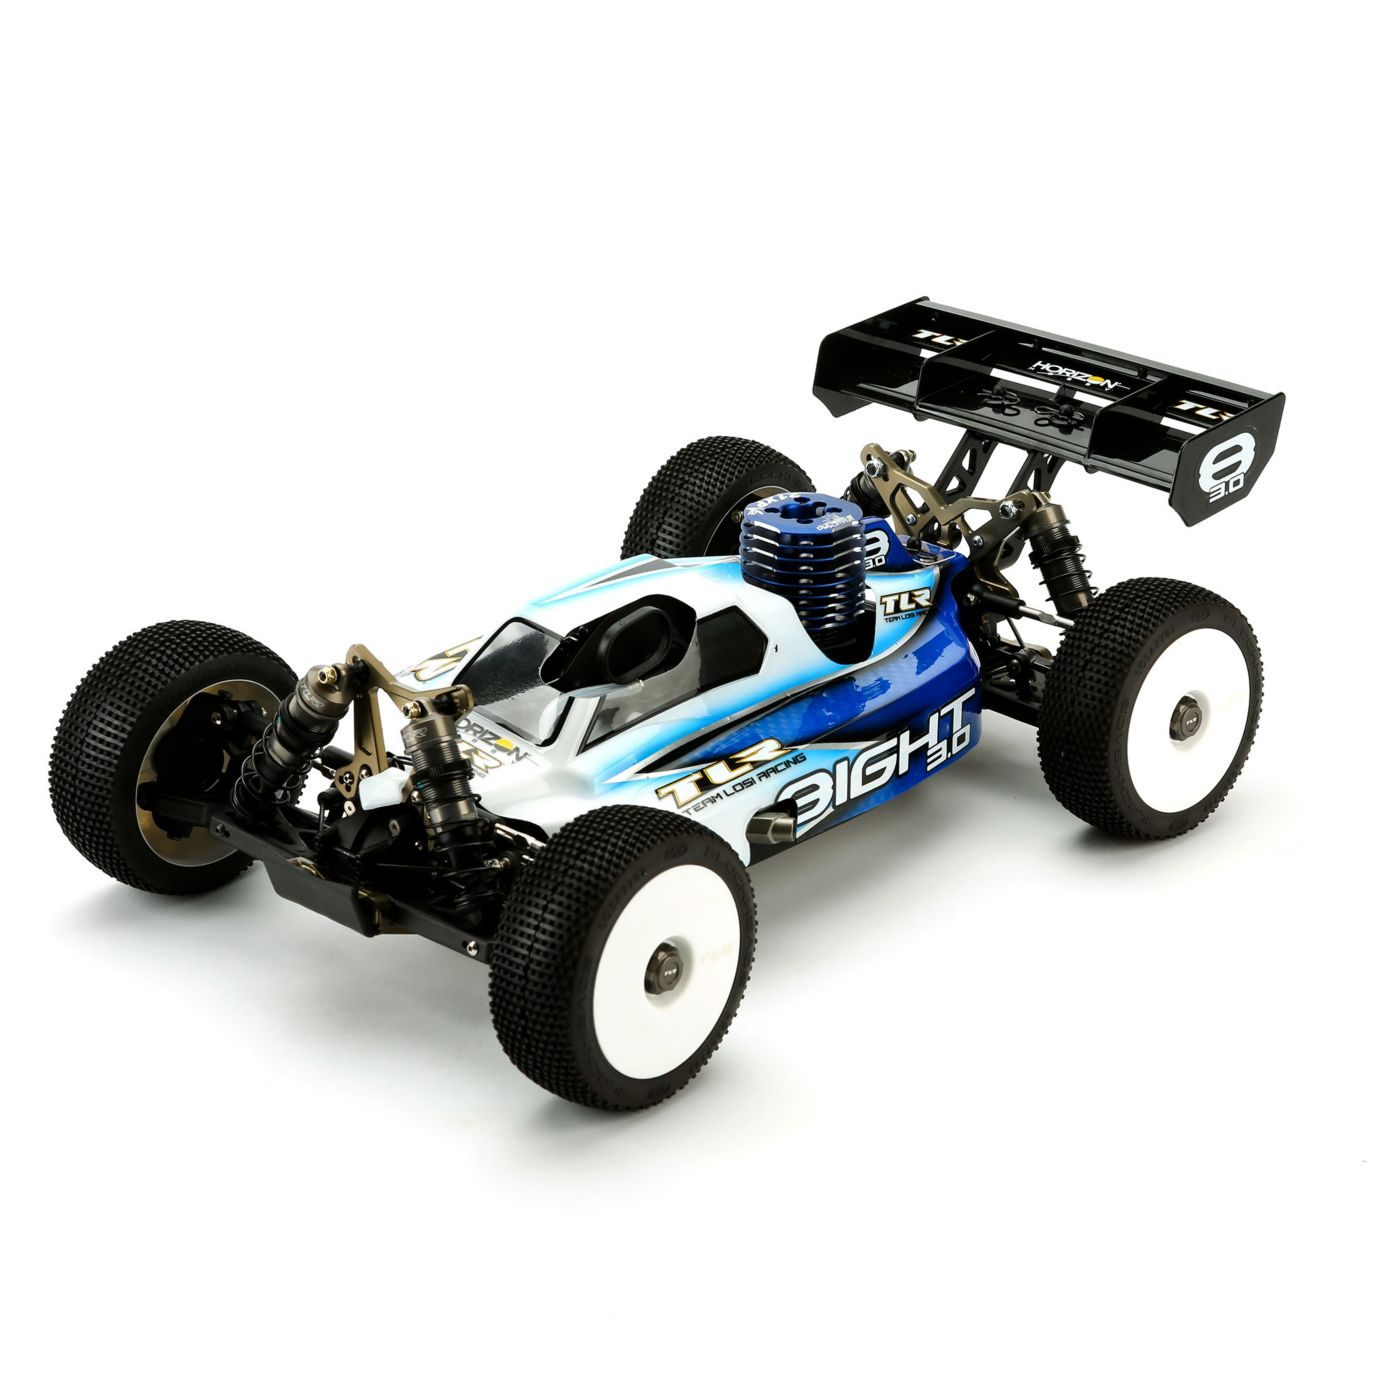 Team Losi Racing 1 8 8ight 3 0 4wd Nitro Buggy Kit 2014 Rc